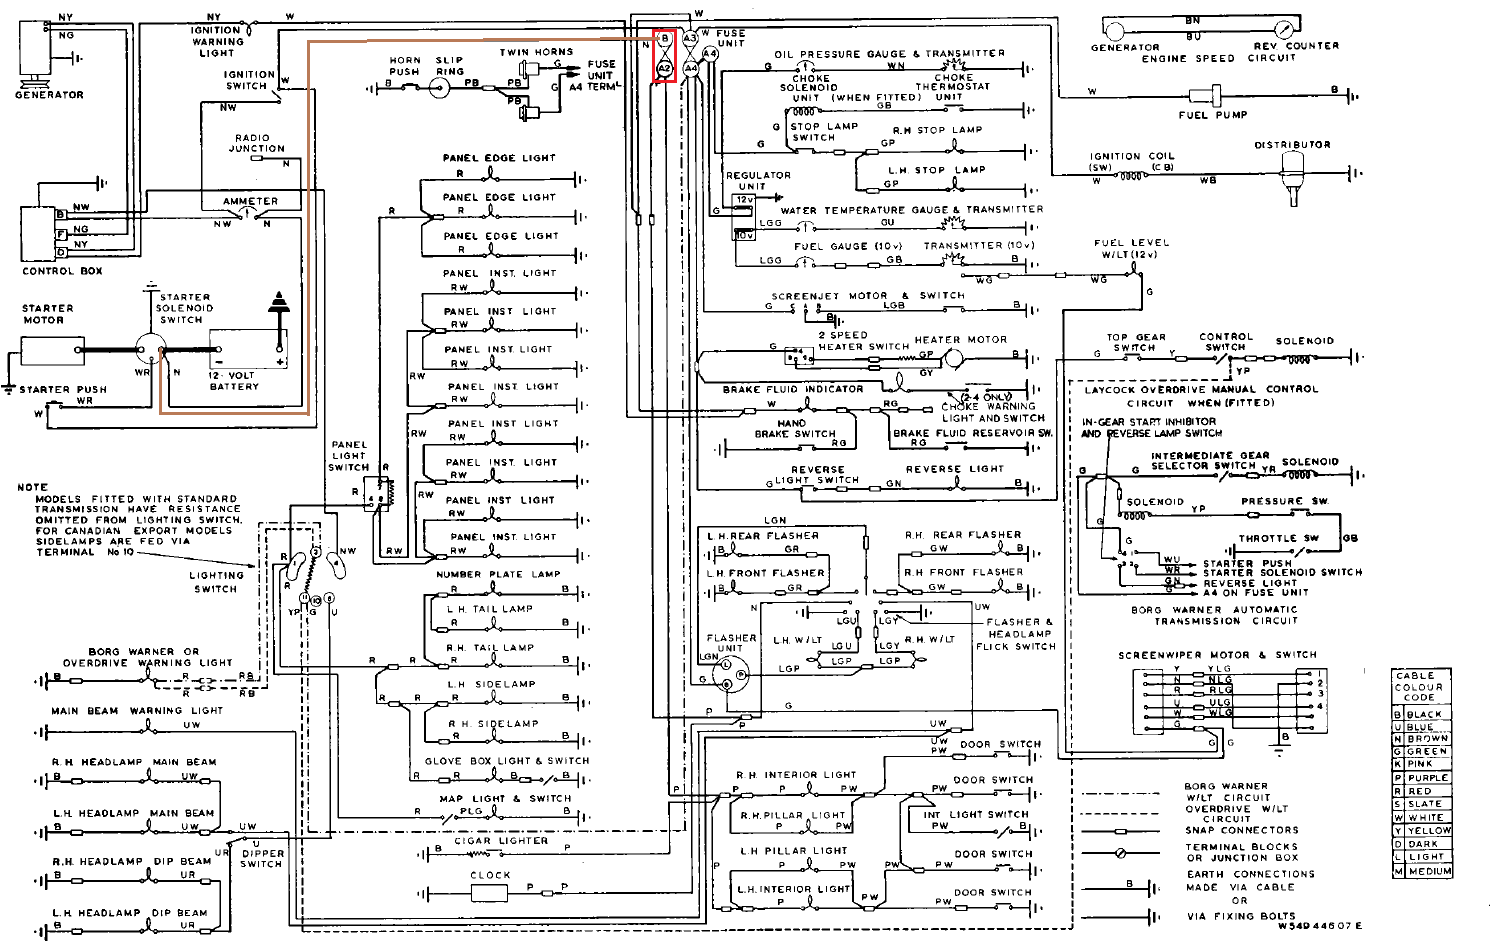 Honda Cb750 K8 Electrical Wiring Diagram Honda CB750